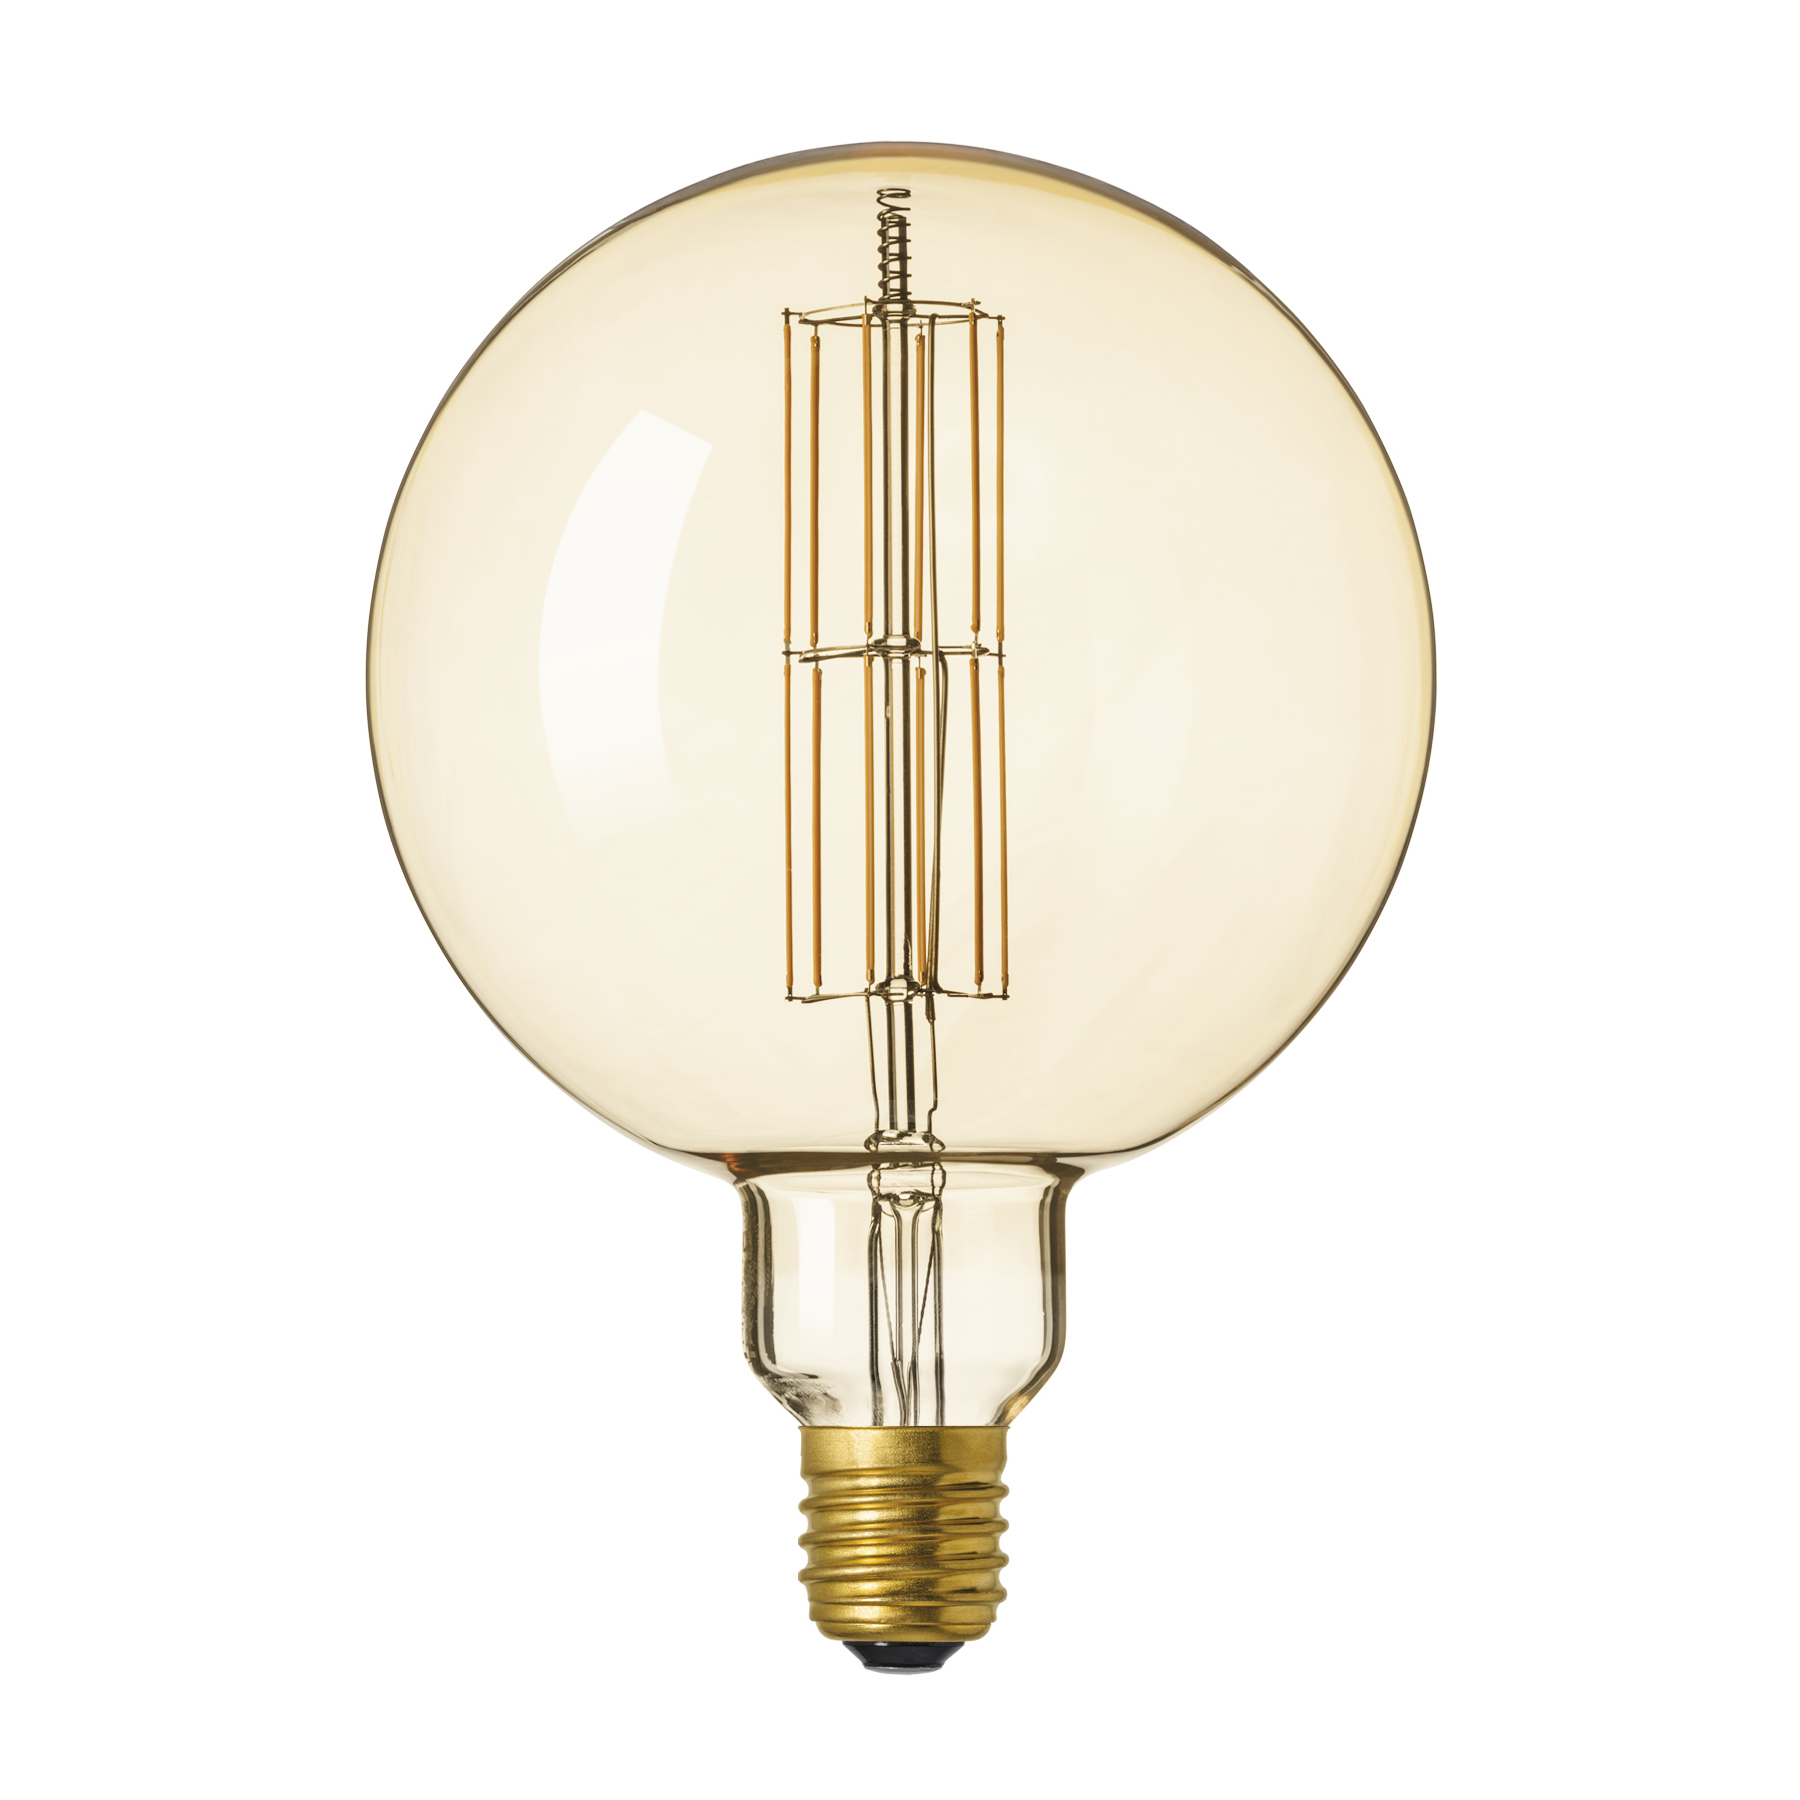 HOME-STOCK-LICHTBRON-LED-MEGAGLOBE-GOUD